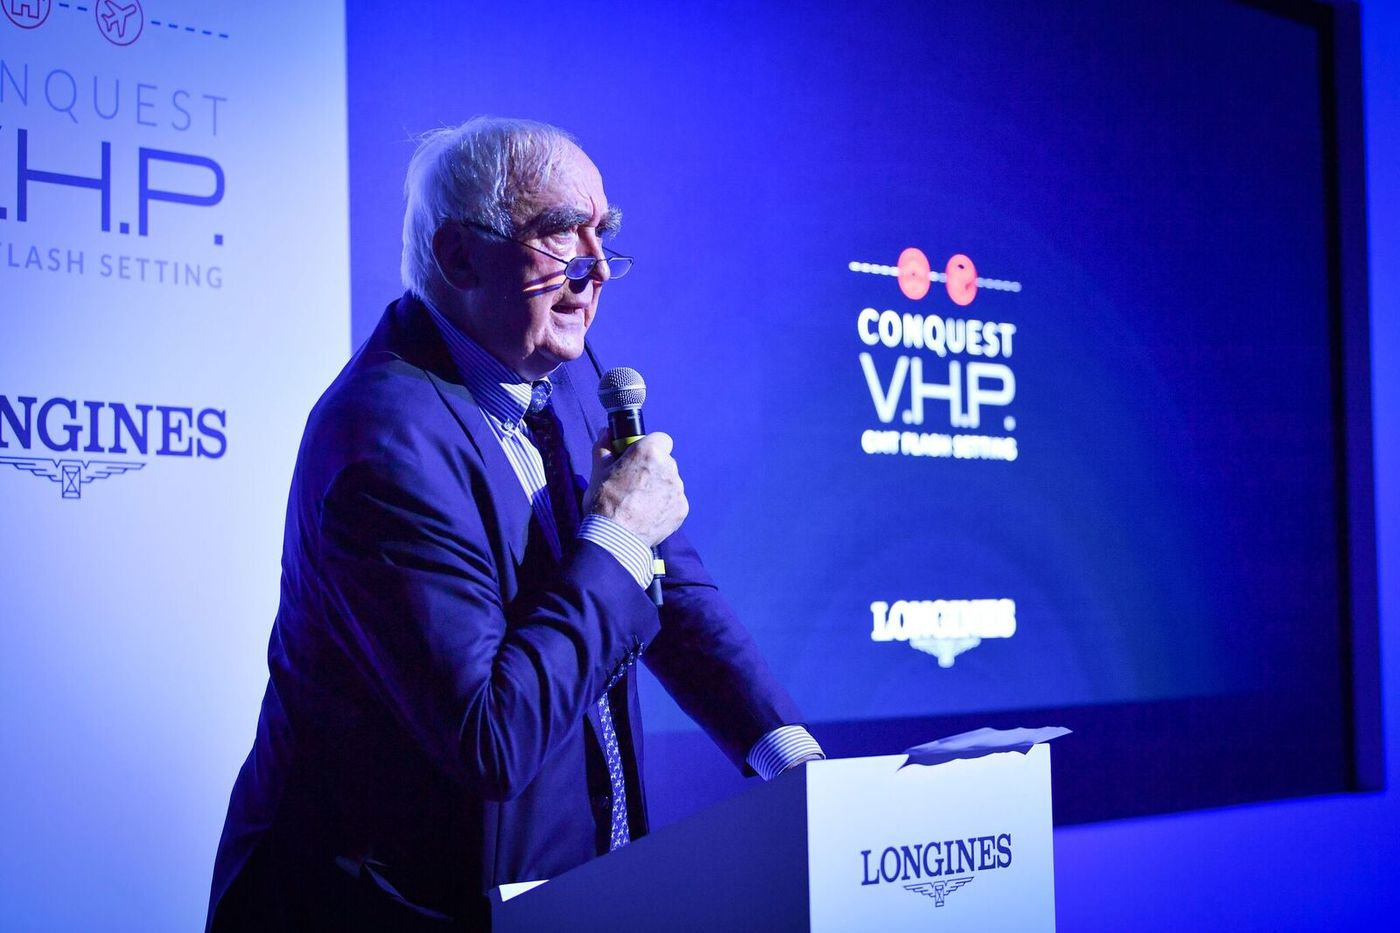 Longines Corporate Event: Longines presents the new Conquest V.H.P. GMT Flash Setting:  the watch made for frequent travelers 10